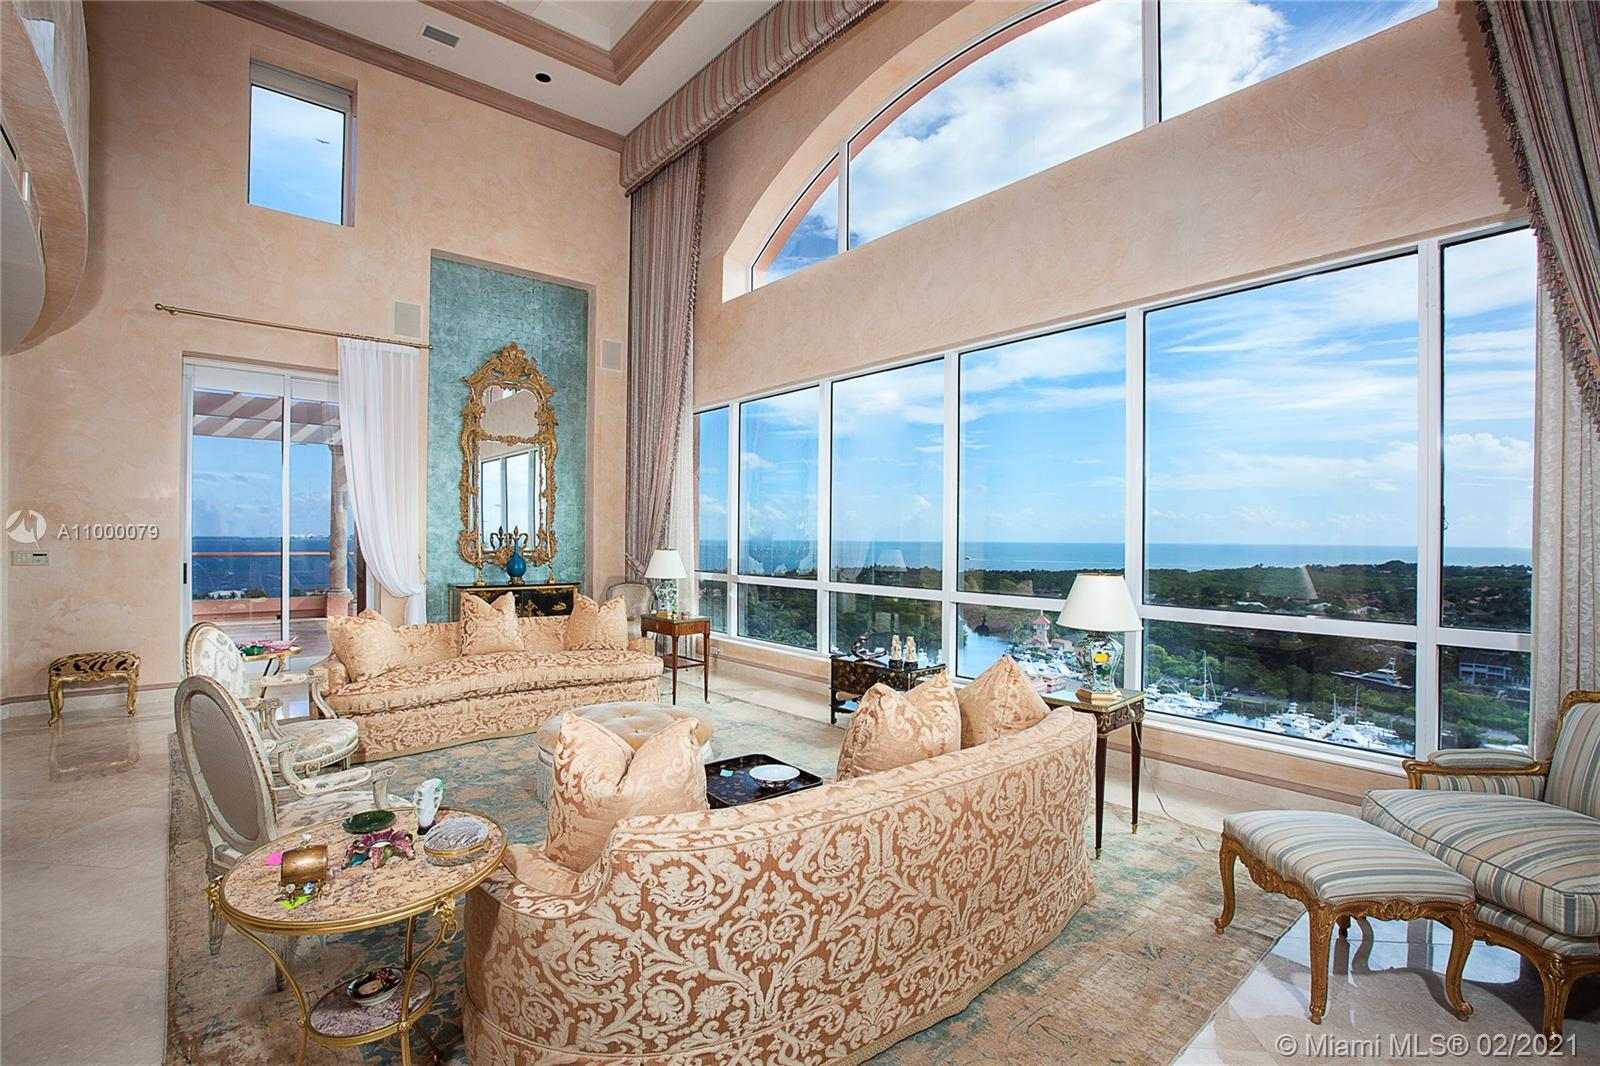 10 Edgewater Dr, Unit #TS-A Luxury Real Estate